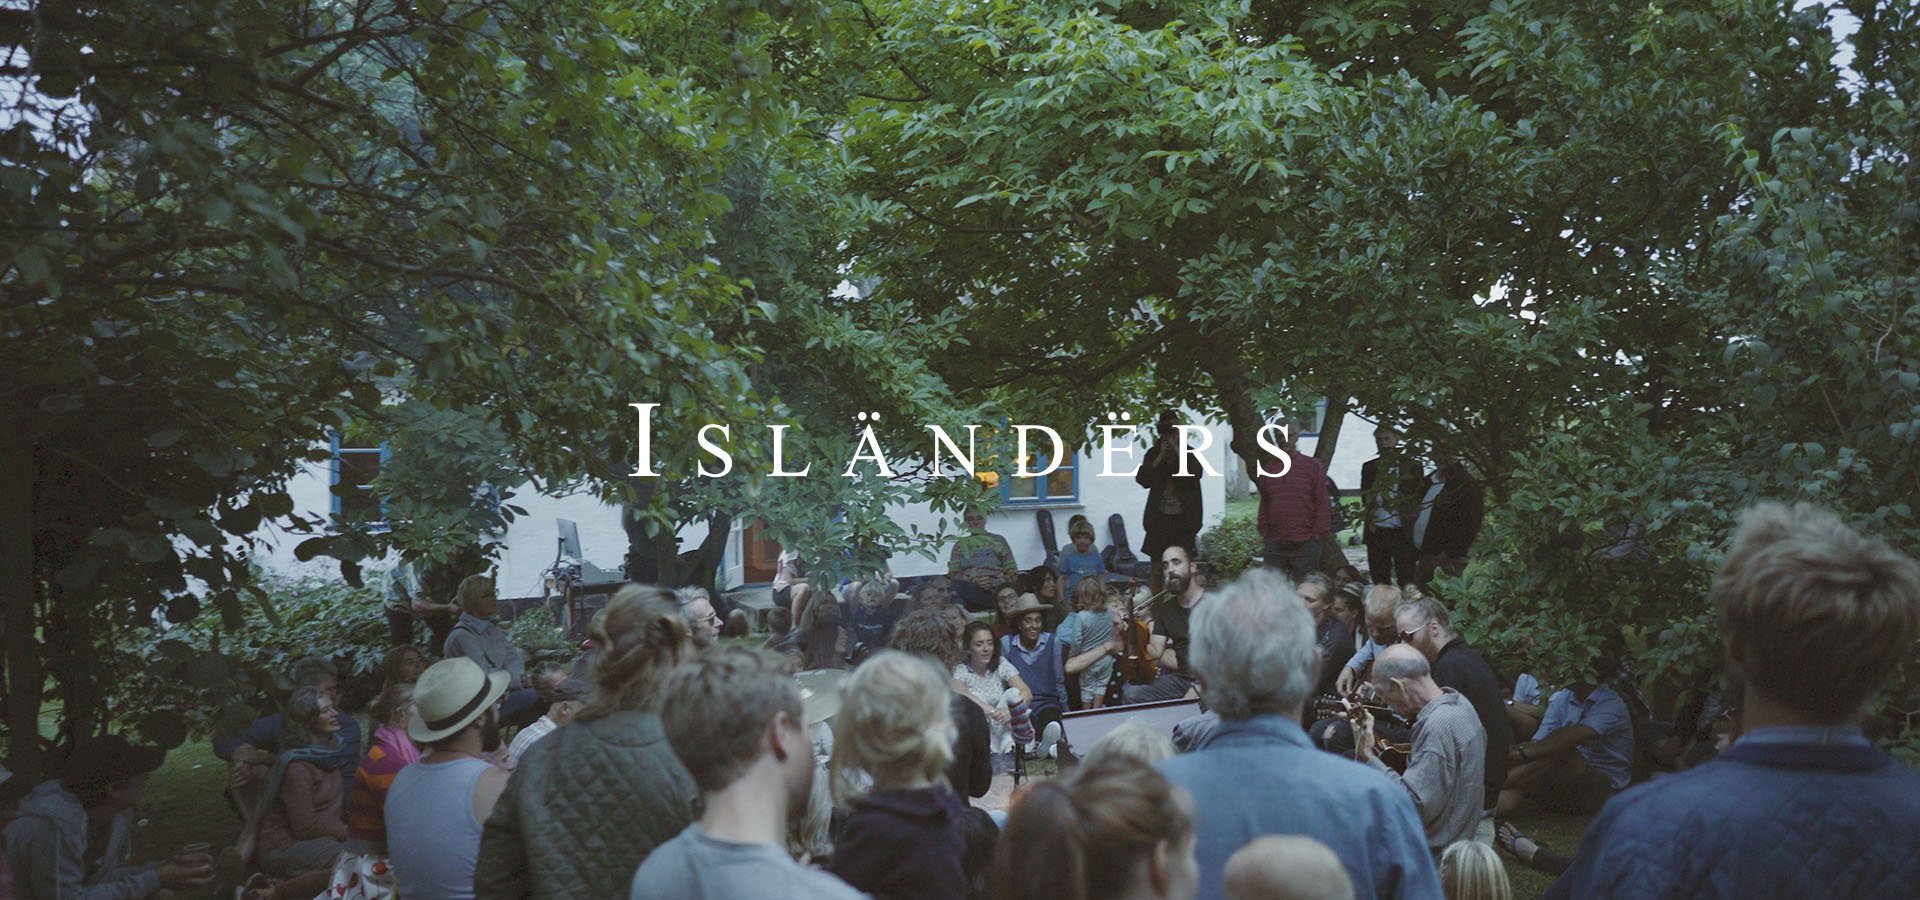 "<a href=""http://www.moensessions.com/2018/09/23/aug-islanders/"">.</a>"